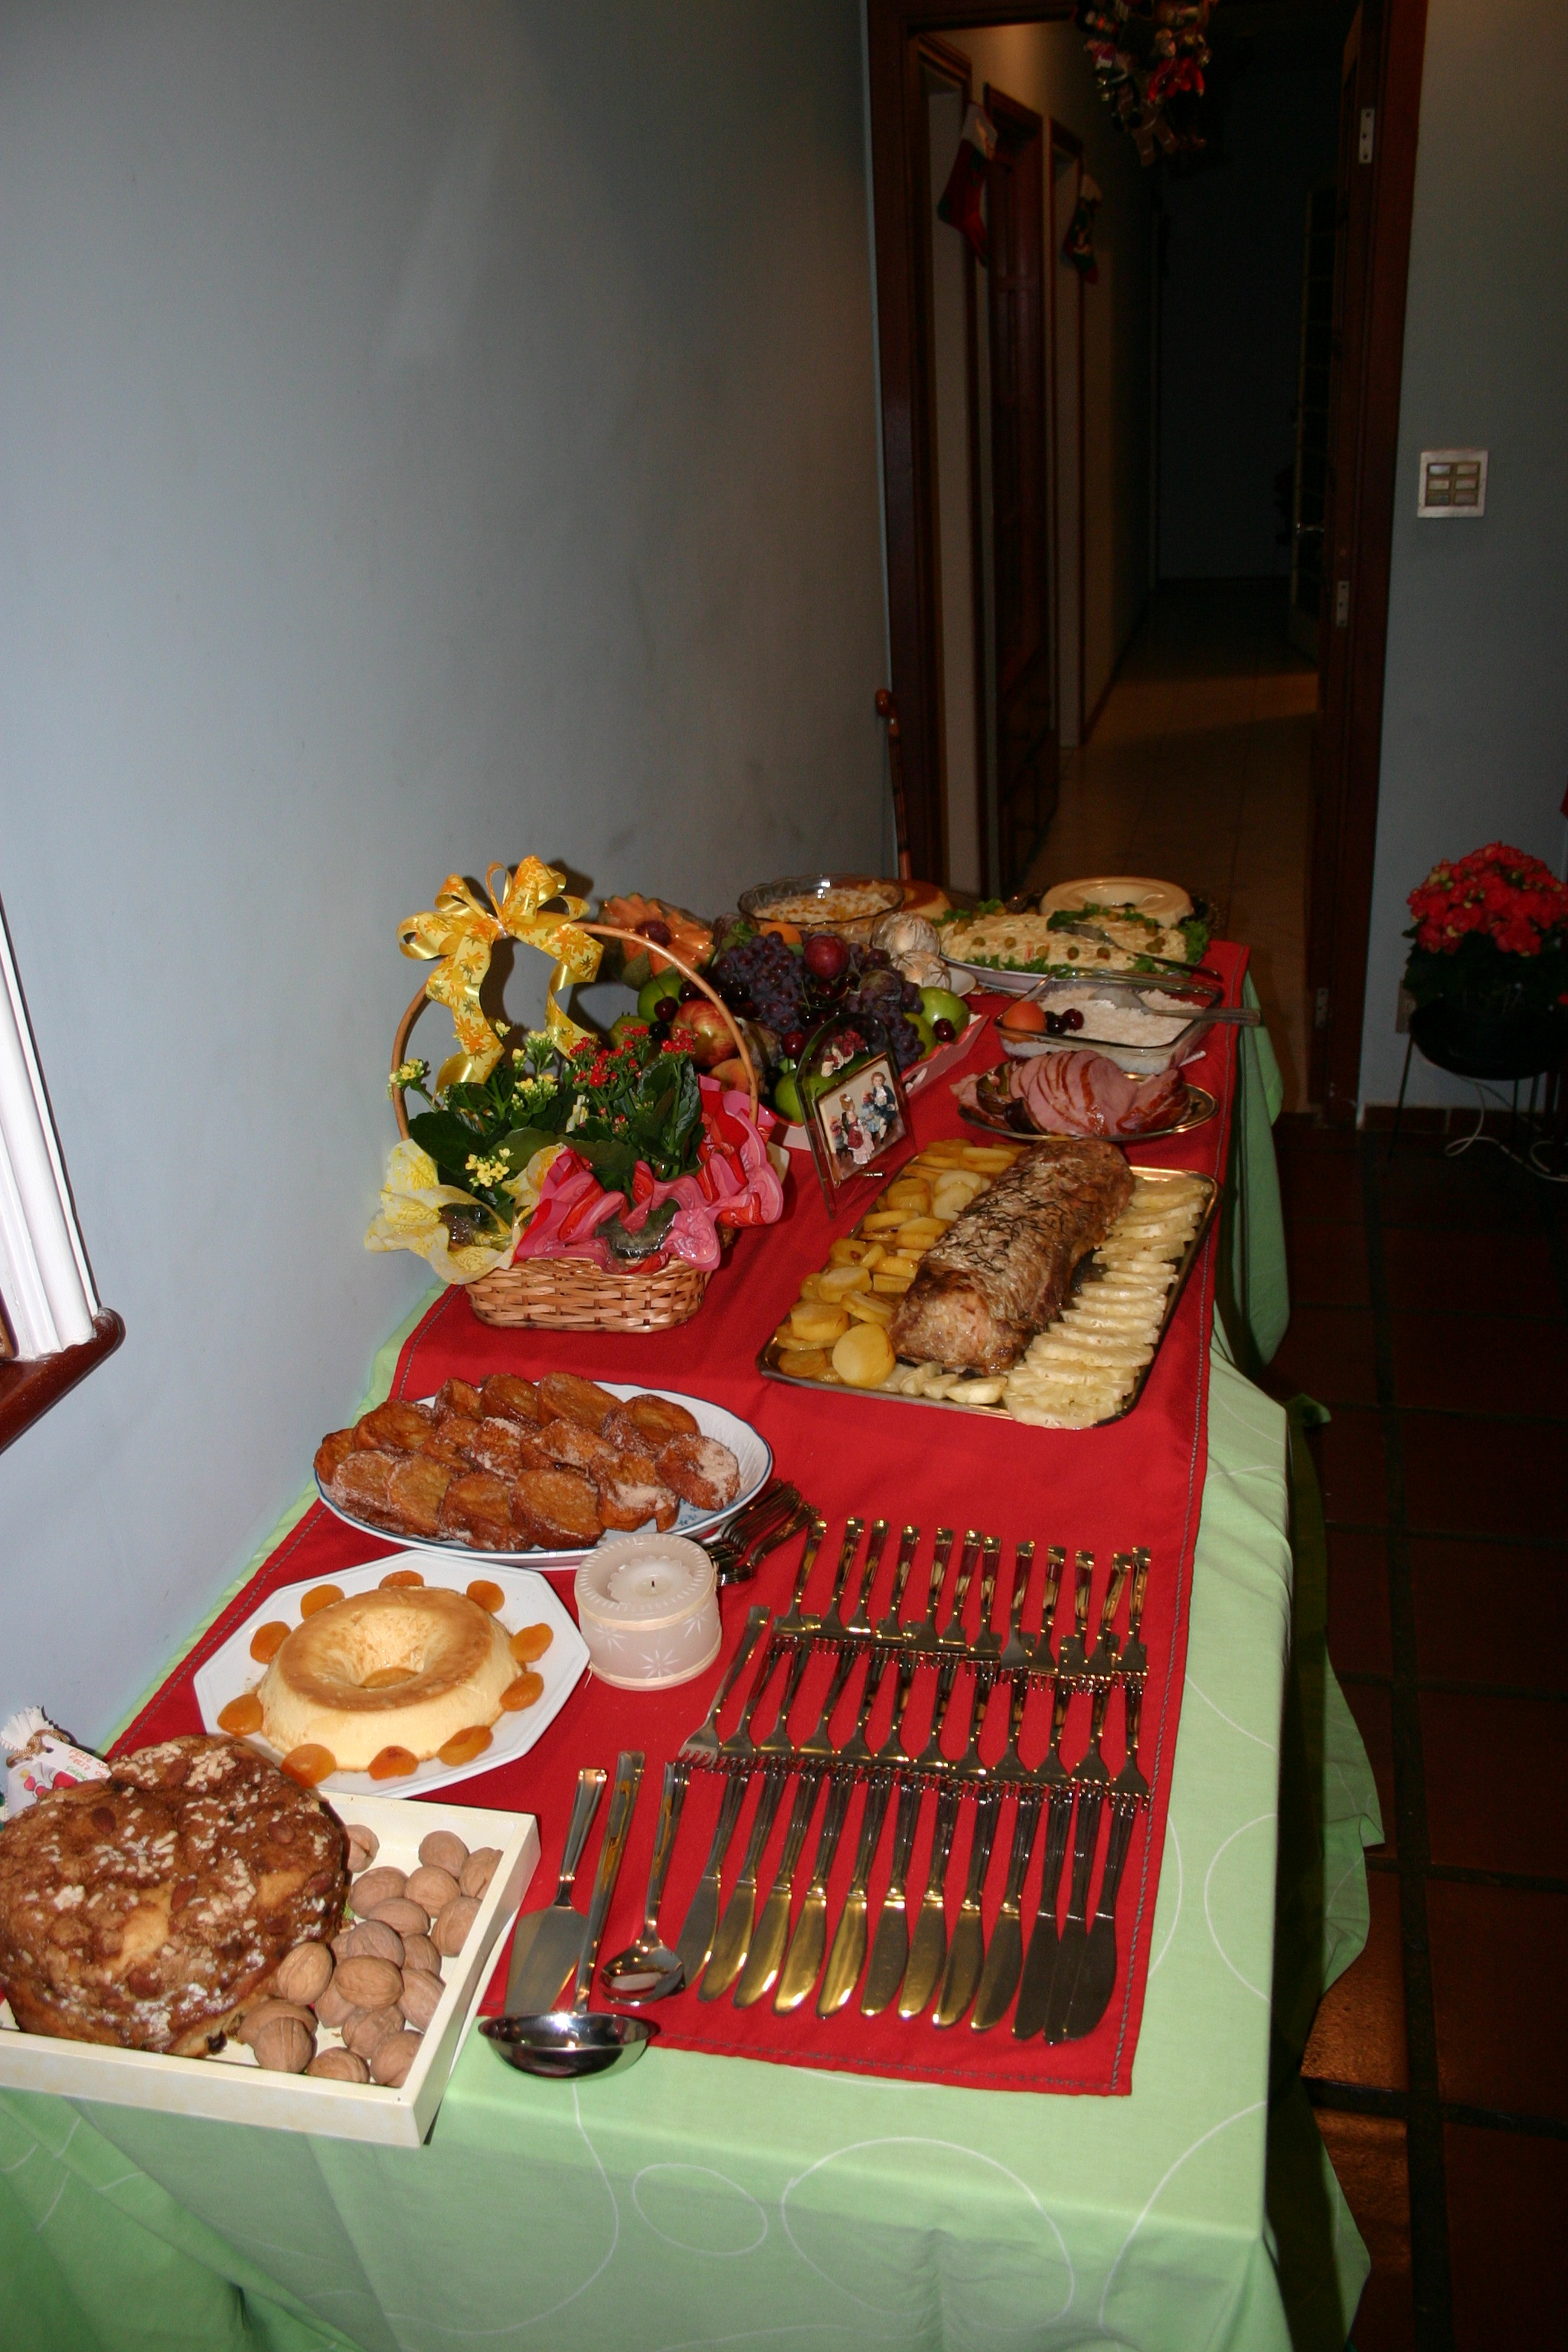 What Food Do They Eat For Christmas In Brazil